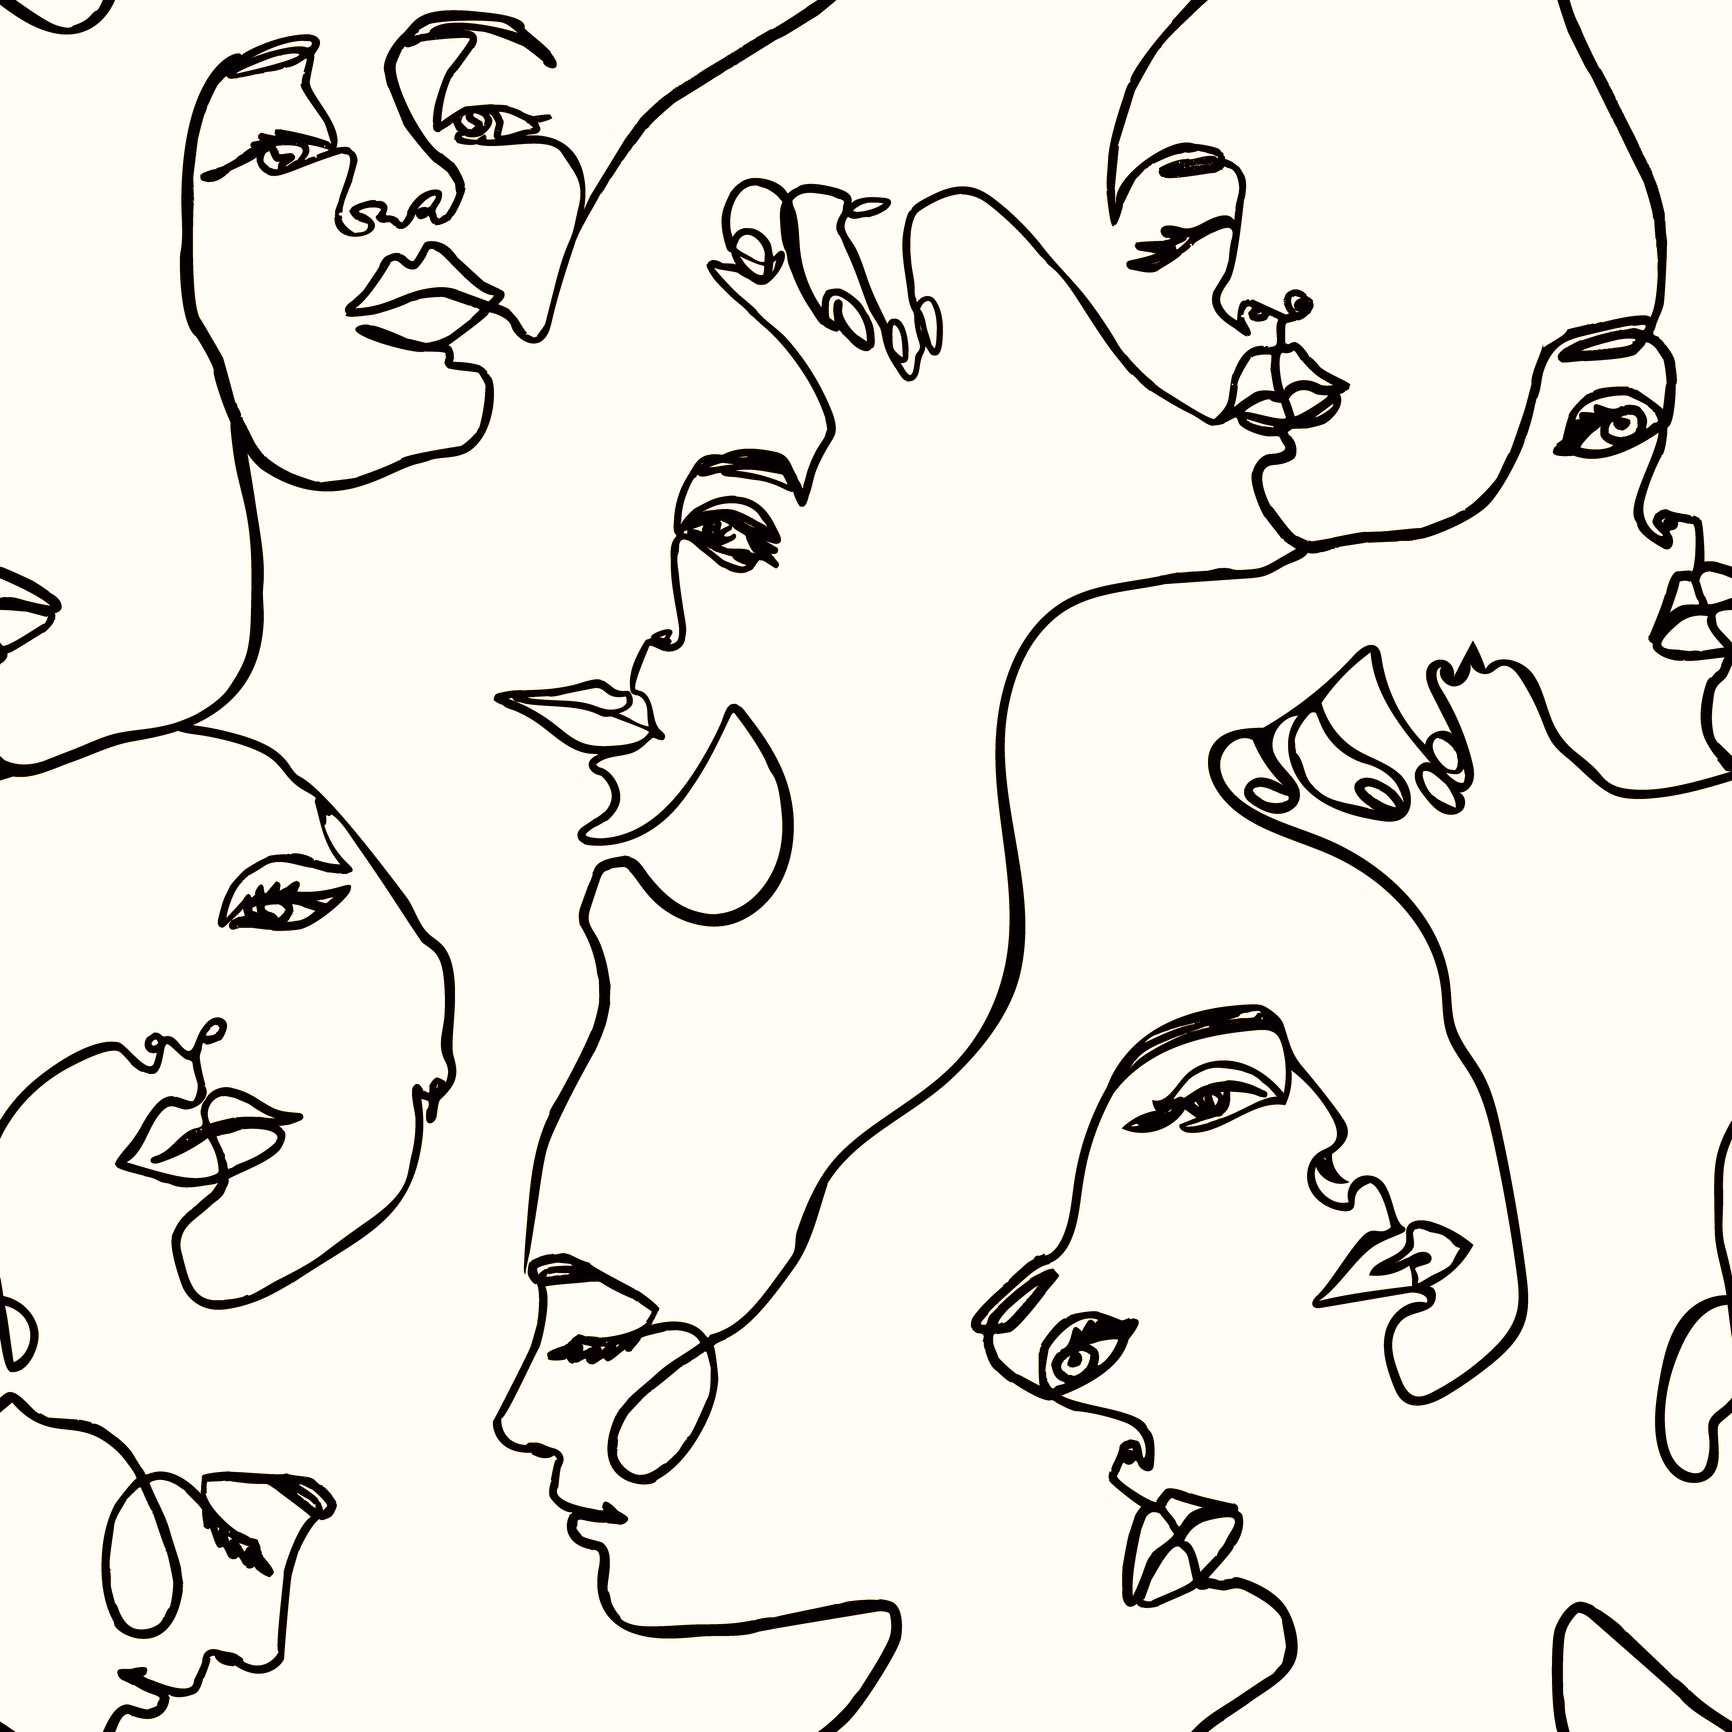 An illustration of various female faces in a seamless pattern.